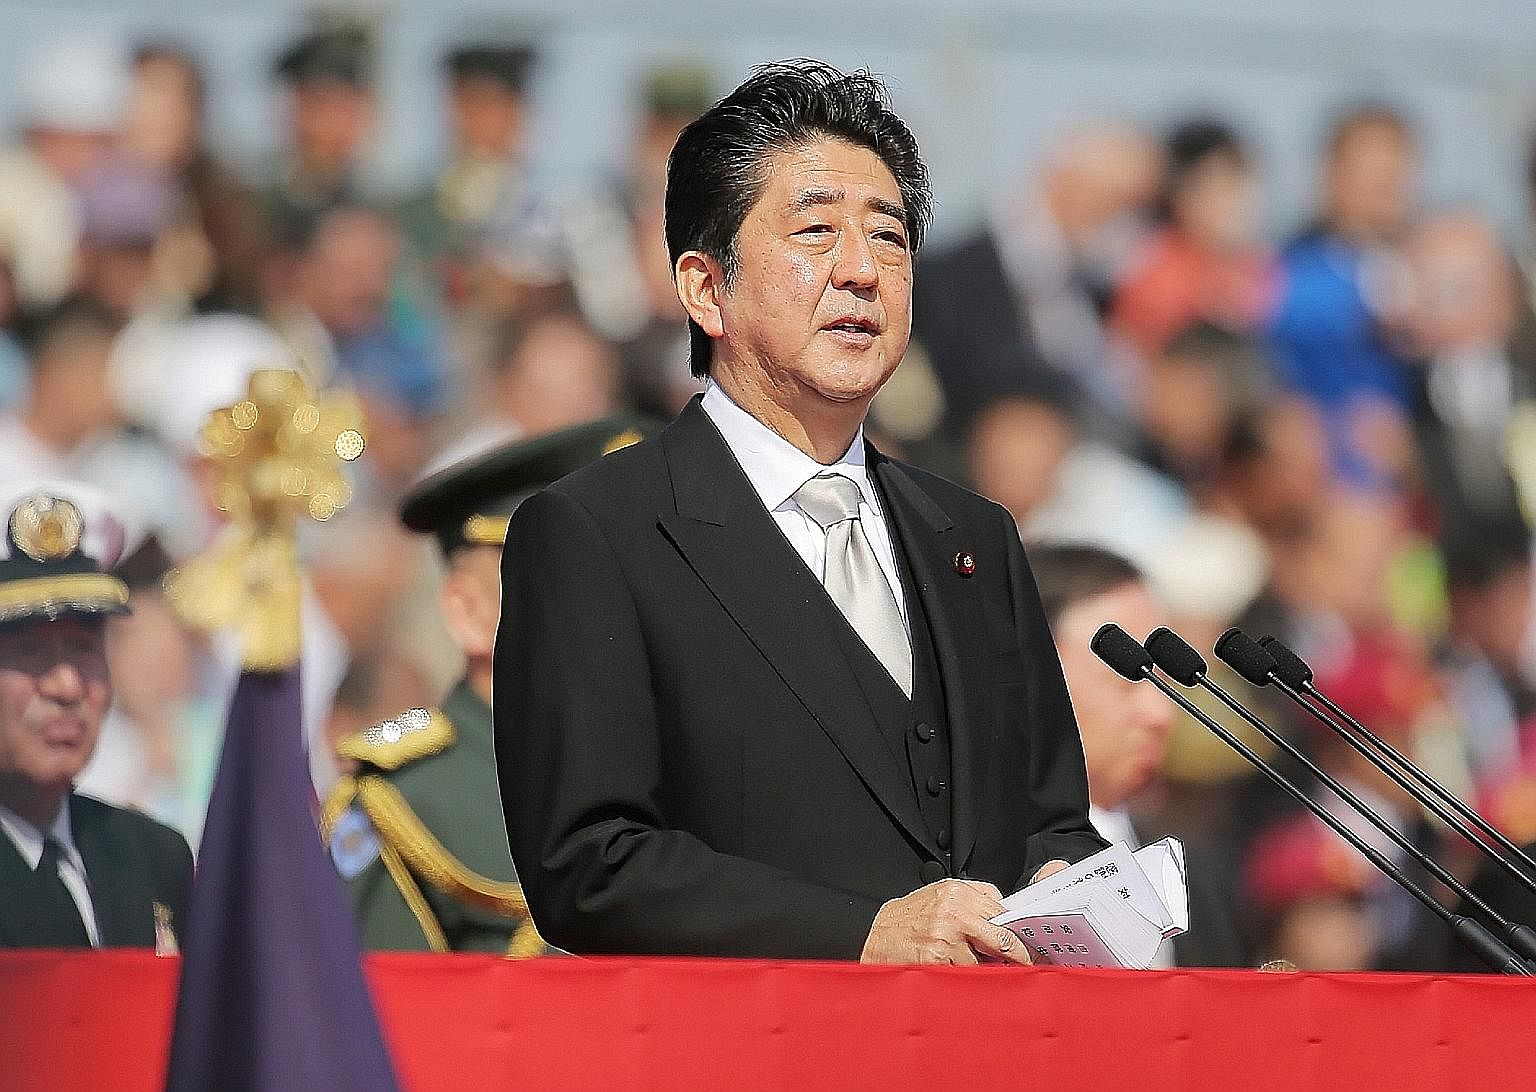 Mr Abe was due to step down as LDP president in September 2018 if not for the rule change - which must be formally approved at a party convention next March.